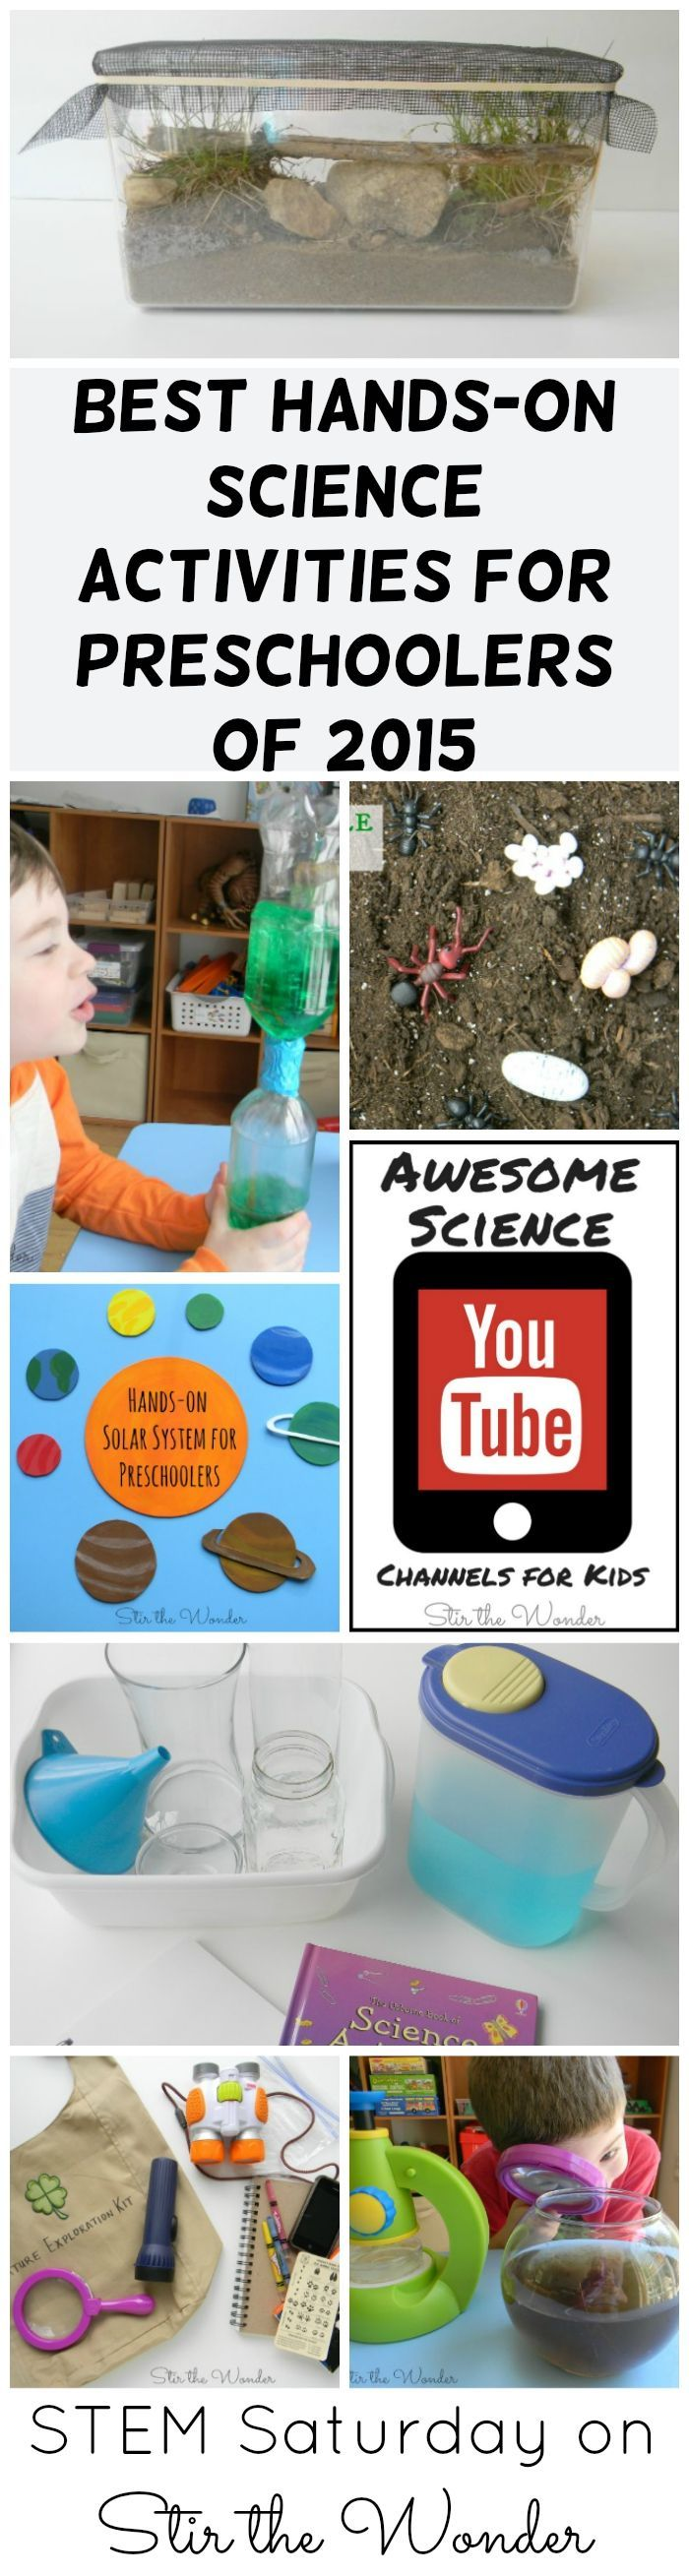 Best Hands-on Science Activities for Preschoolers